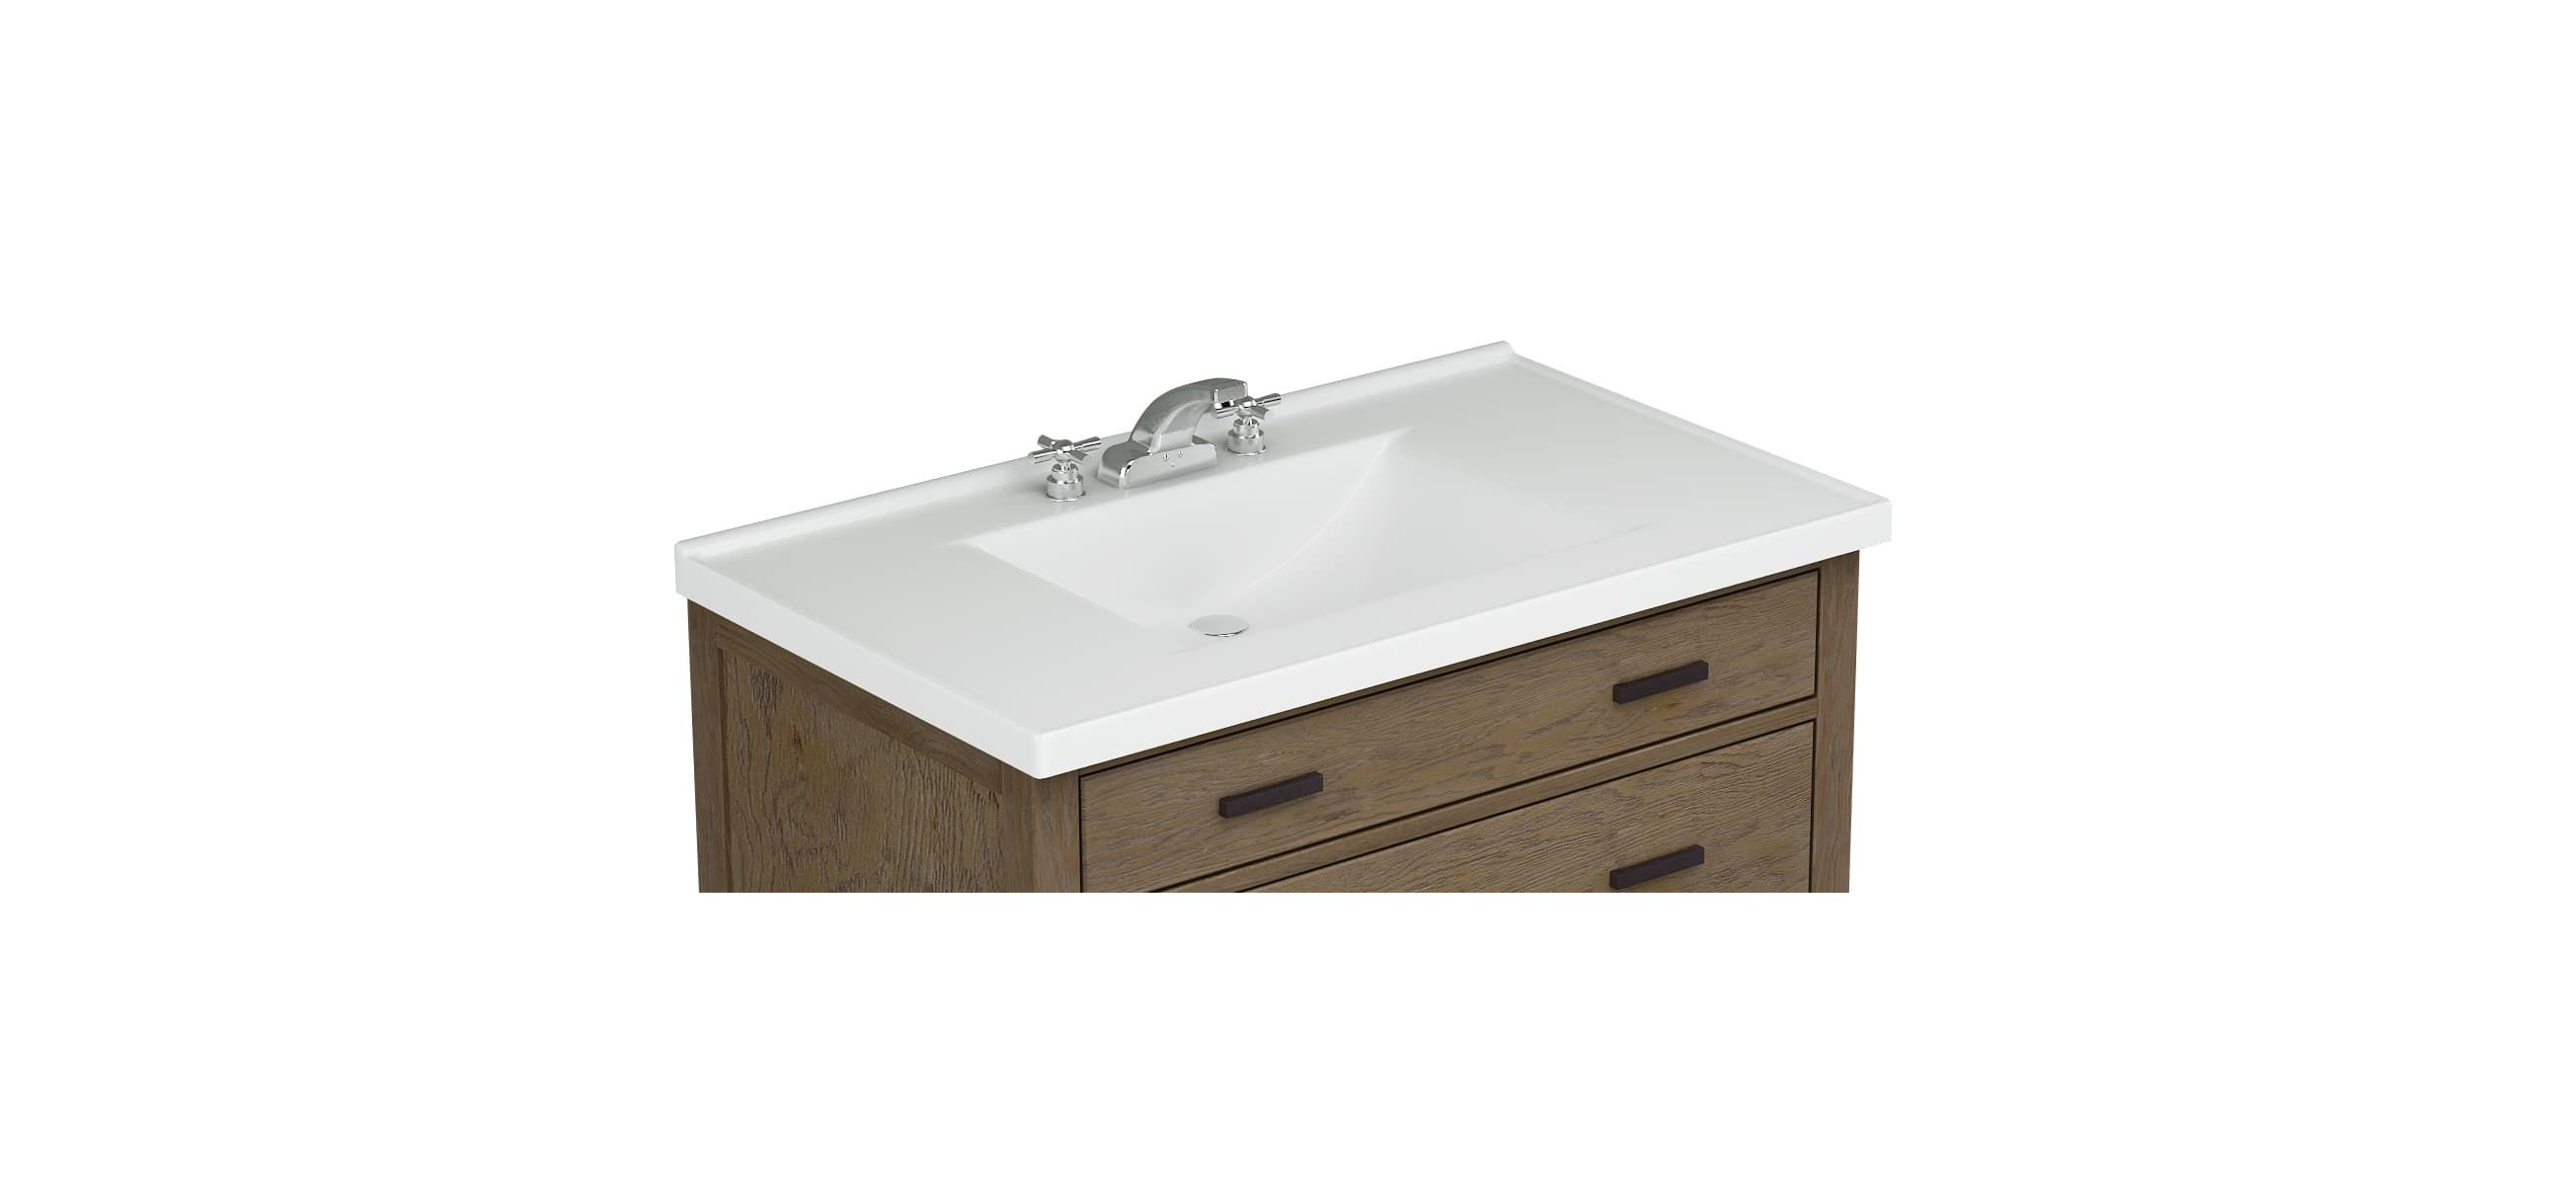 Sagehill Designs Wb3722 37 Cultured Marble Vanity Top With